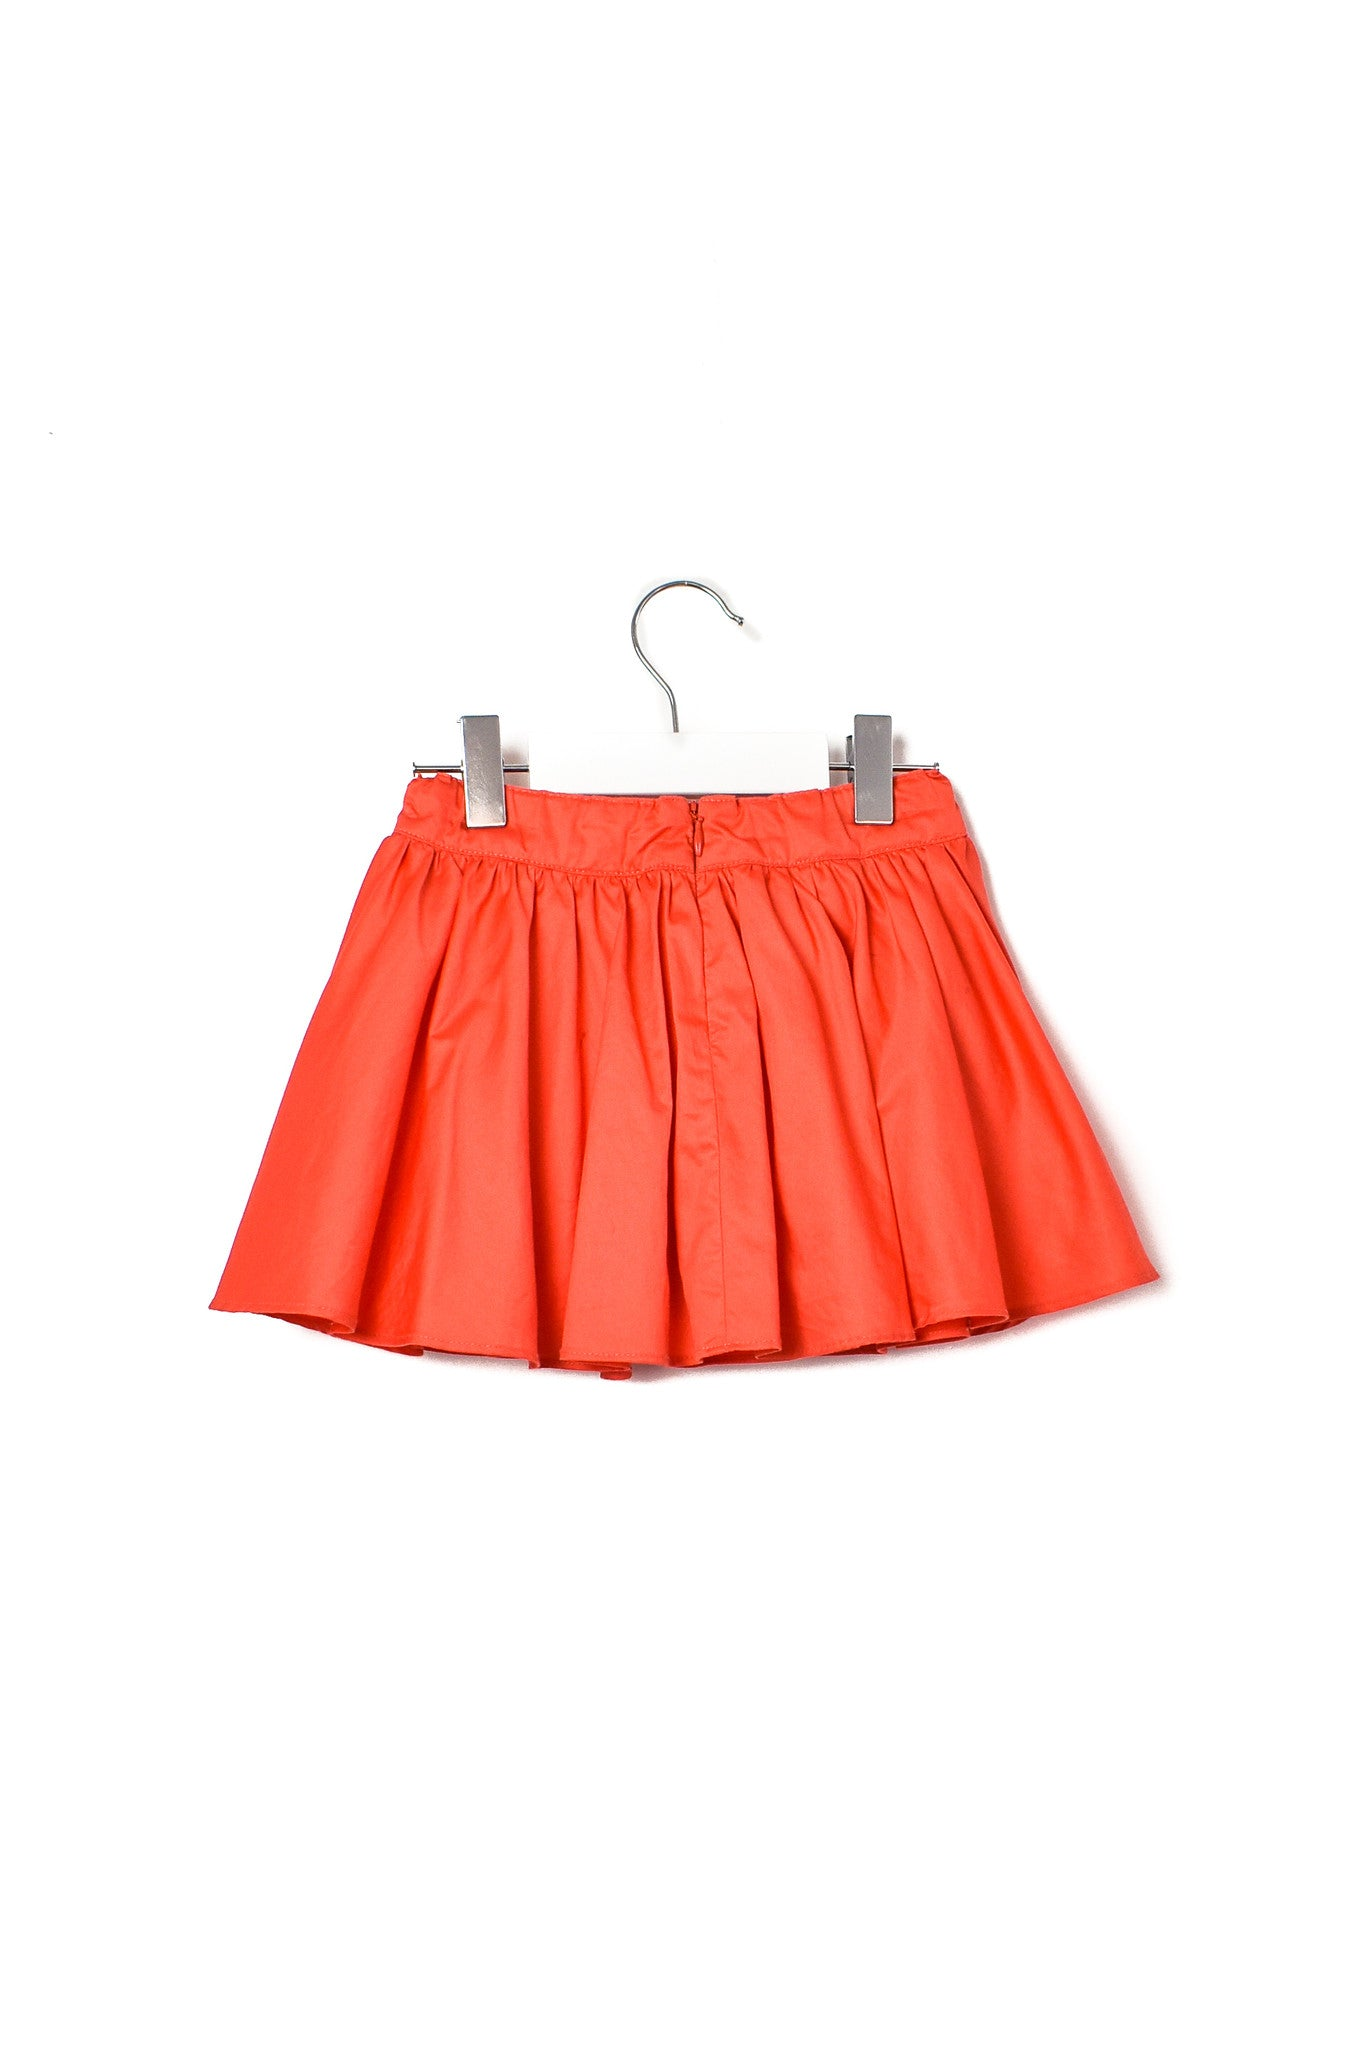 10003497 Seed Kids~Skirt 3T at Retykle